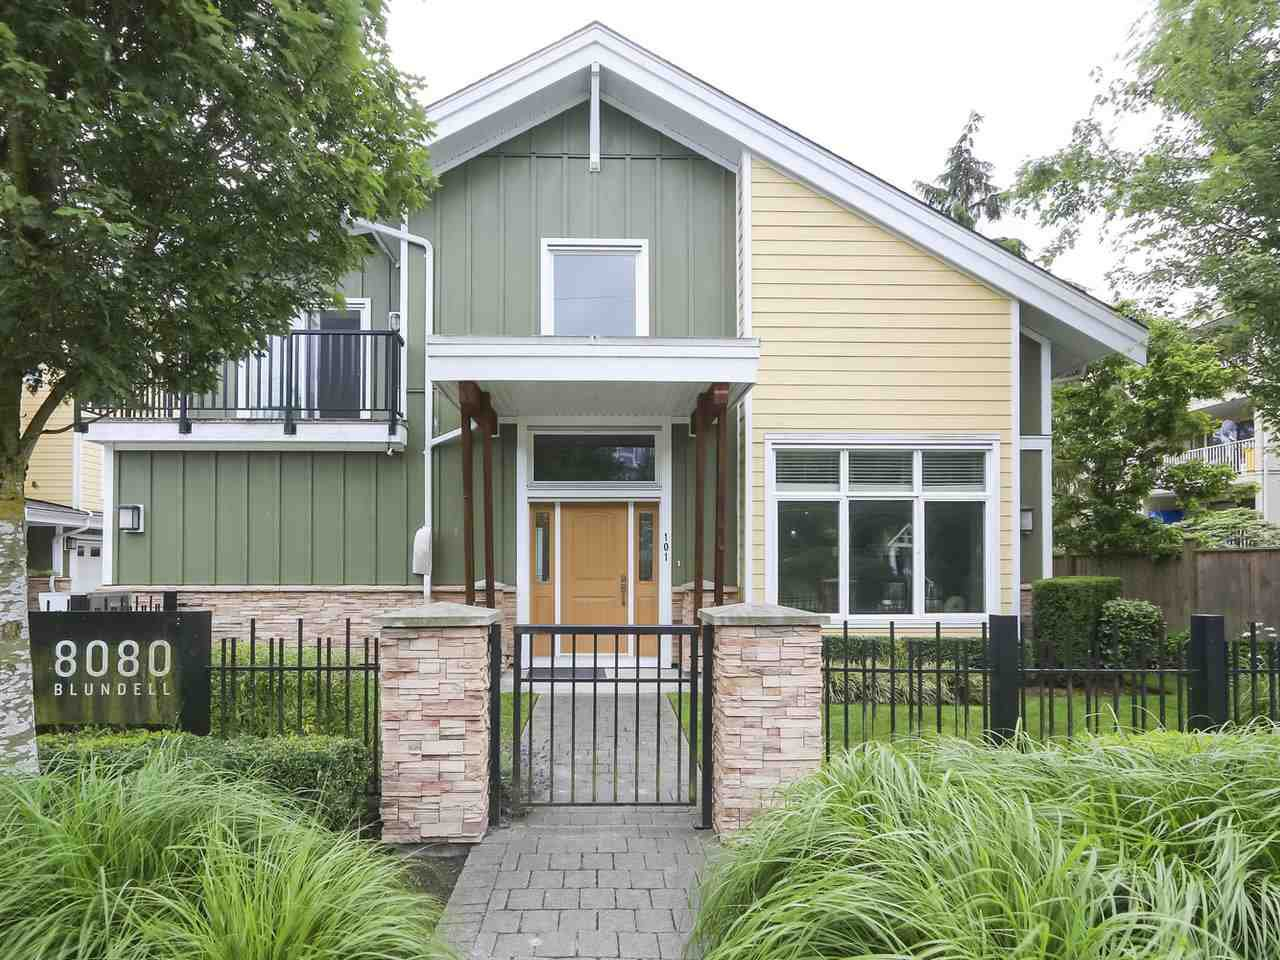 """Main Photo: 101 8080 BLUNDELL Road in Richmond: Garden City Townhouse for sale in """"YEW TOWNHOMES"""" : MLS®# R2400683"""